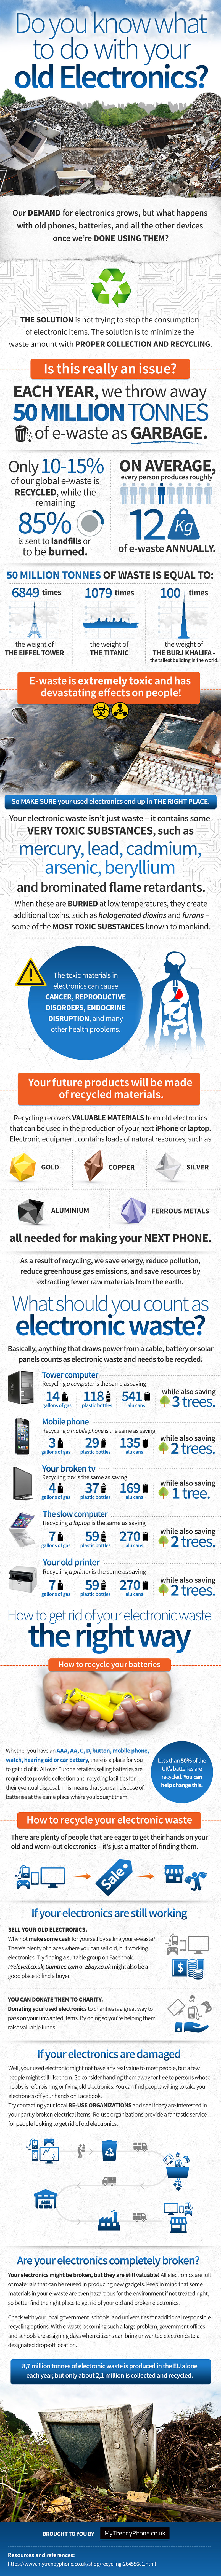 old electronics infographic